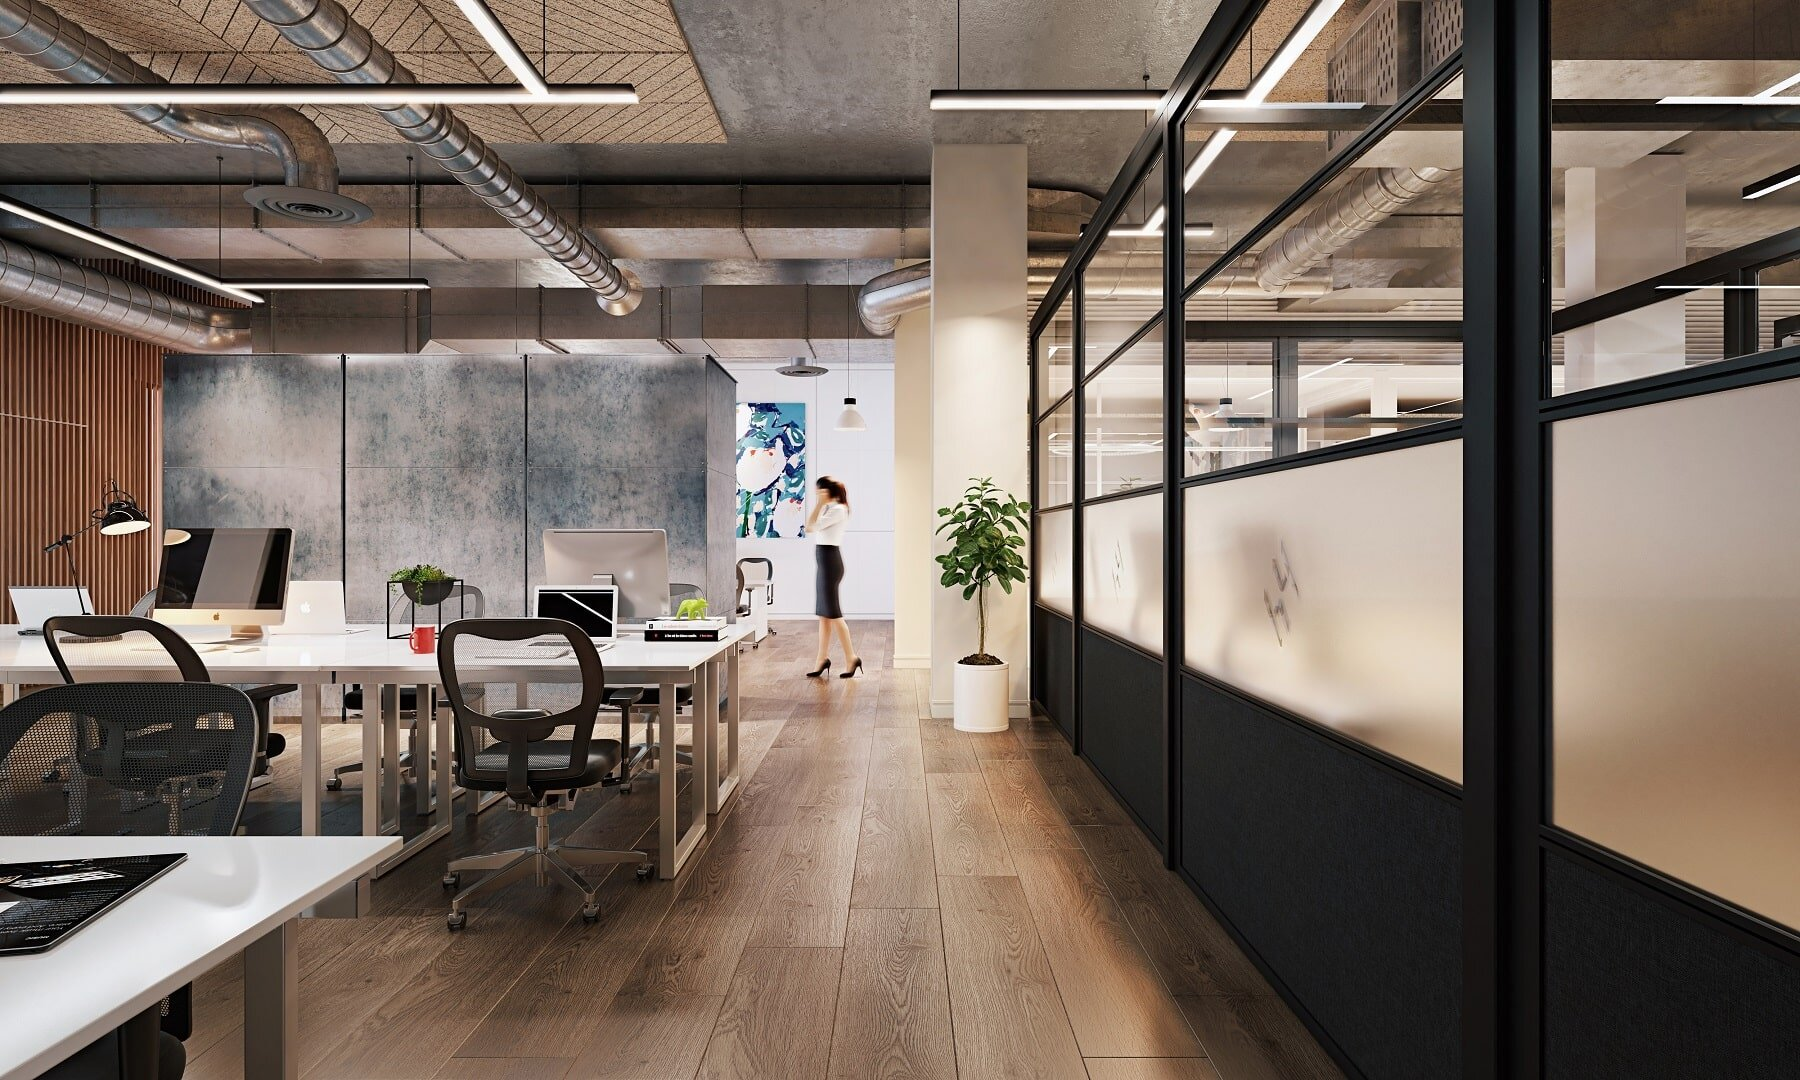 cgi-for-coworking-spaces-open-office-02-min.jpg